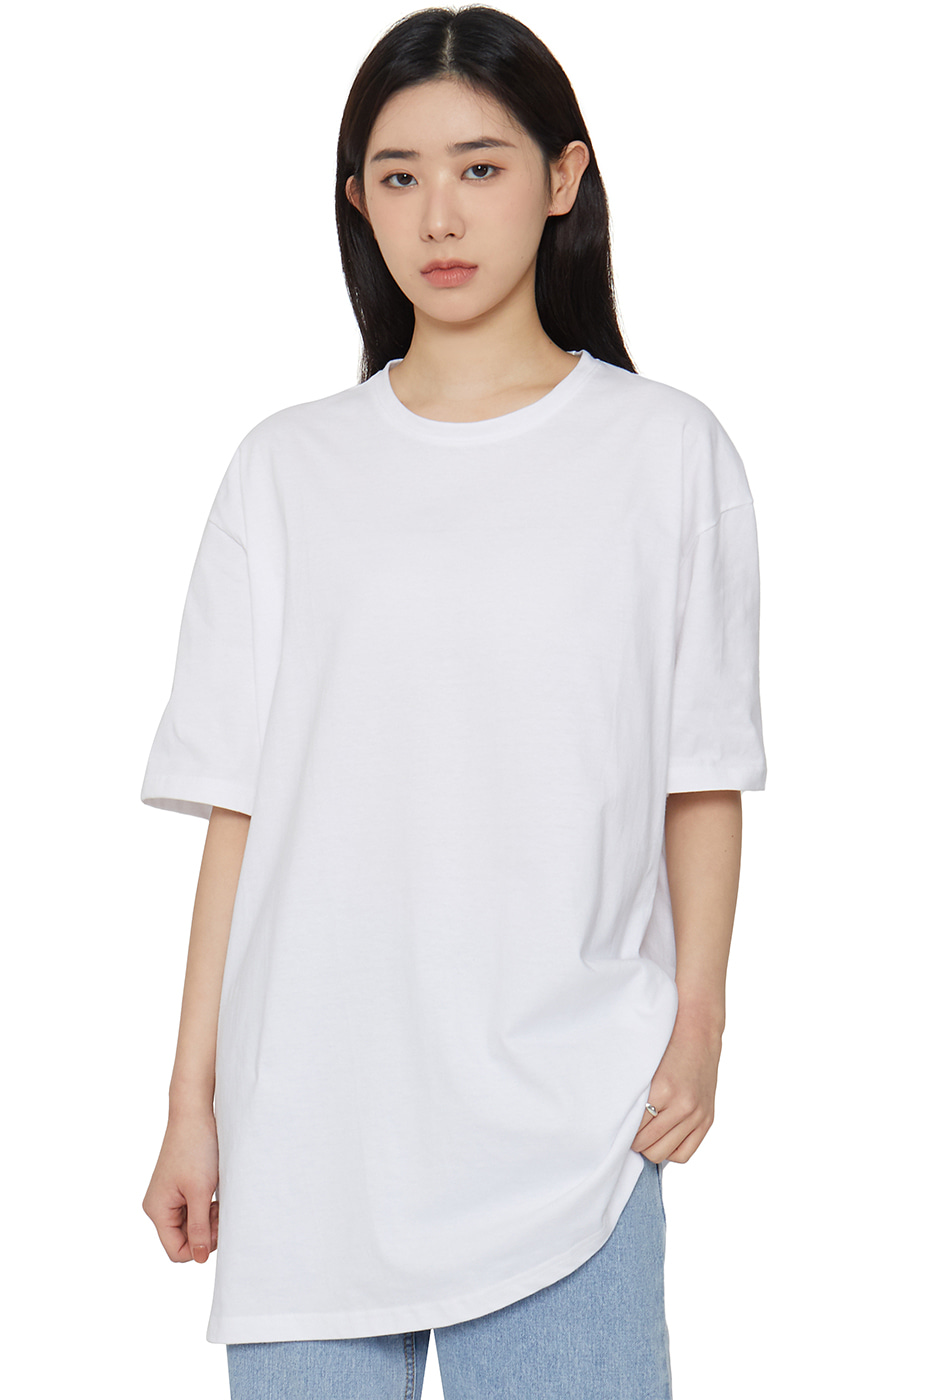 Unisex Basic Half Round Neck T-Shirt